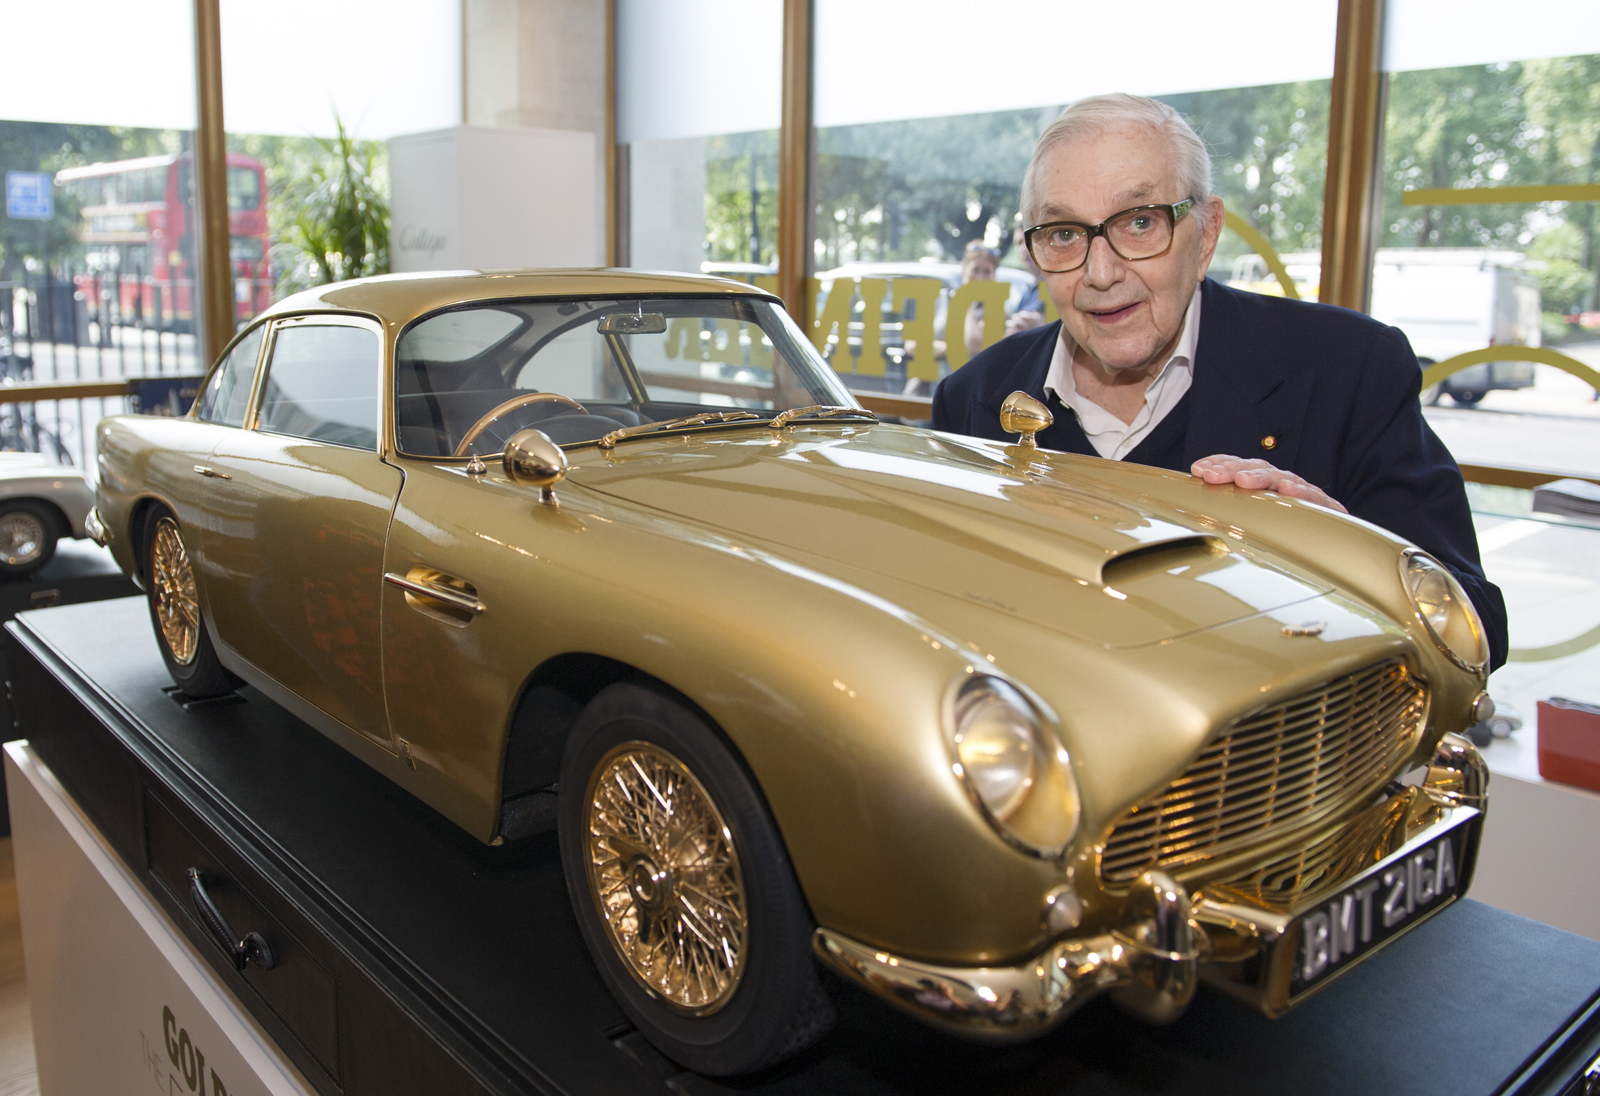 ready to make a bid on james bond model aston martin db5